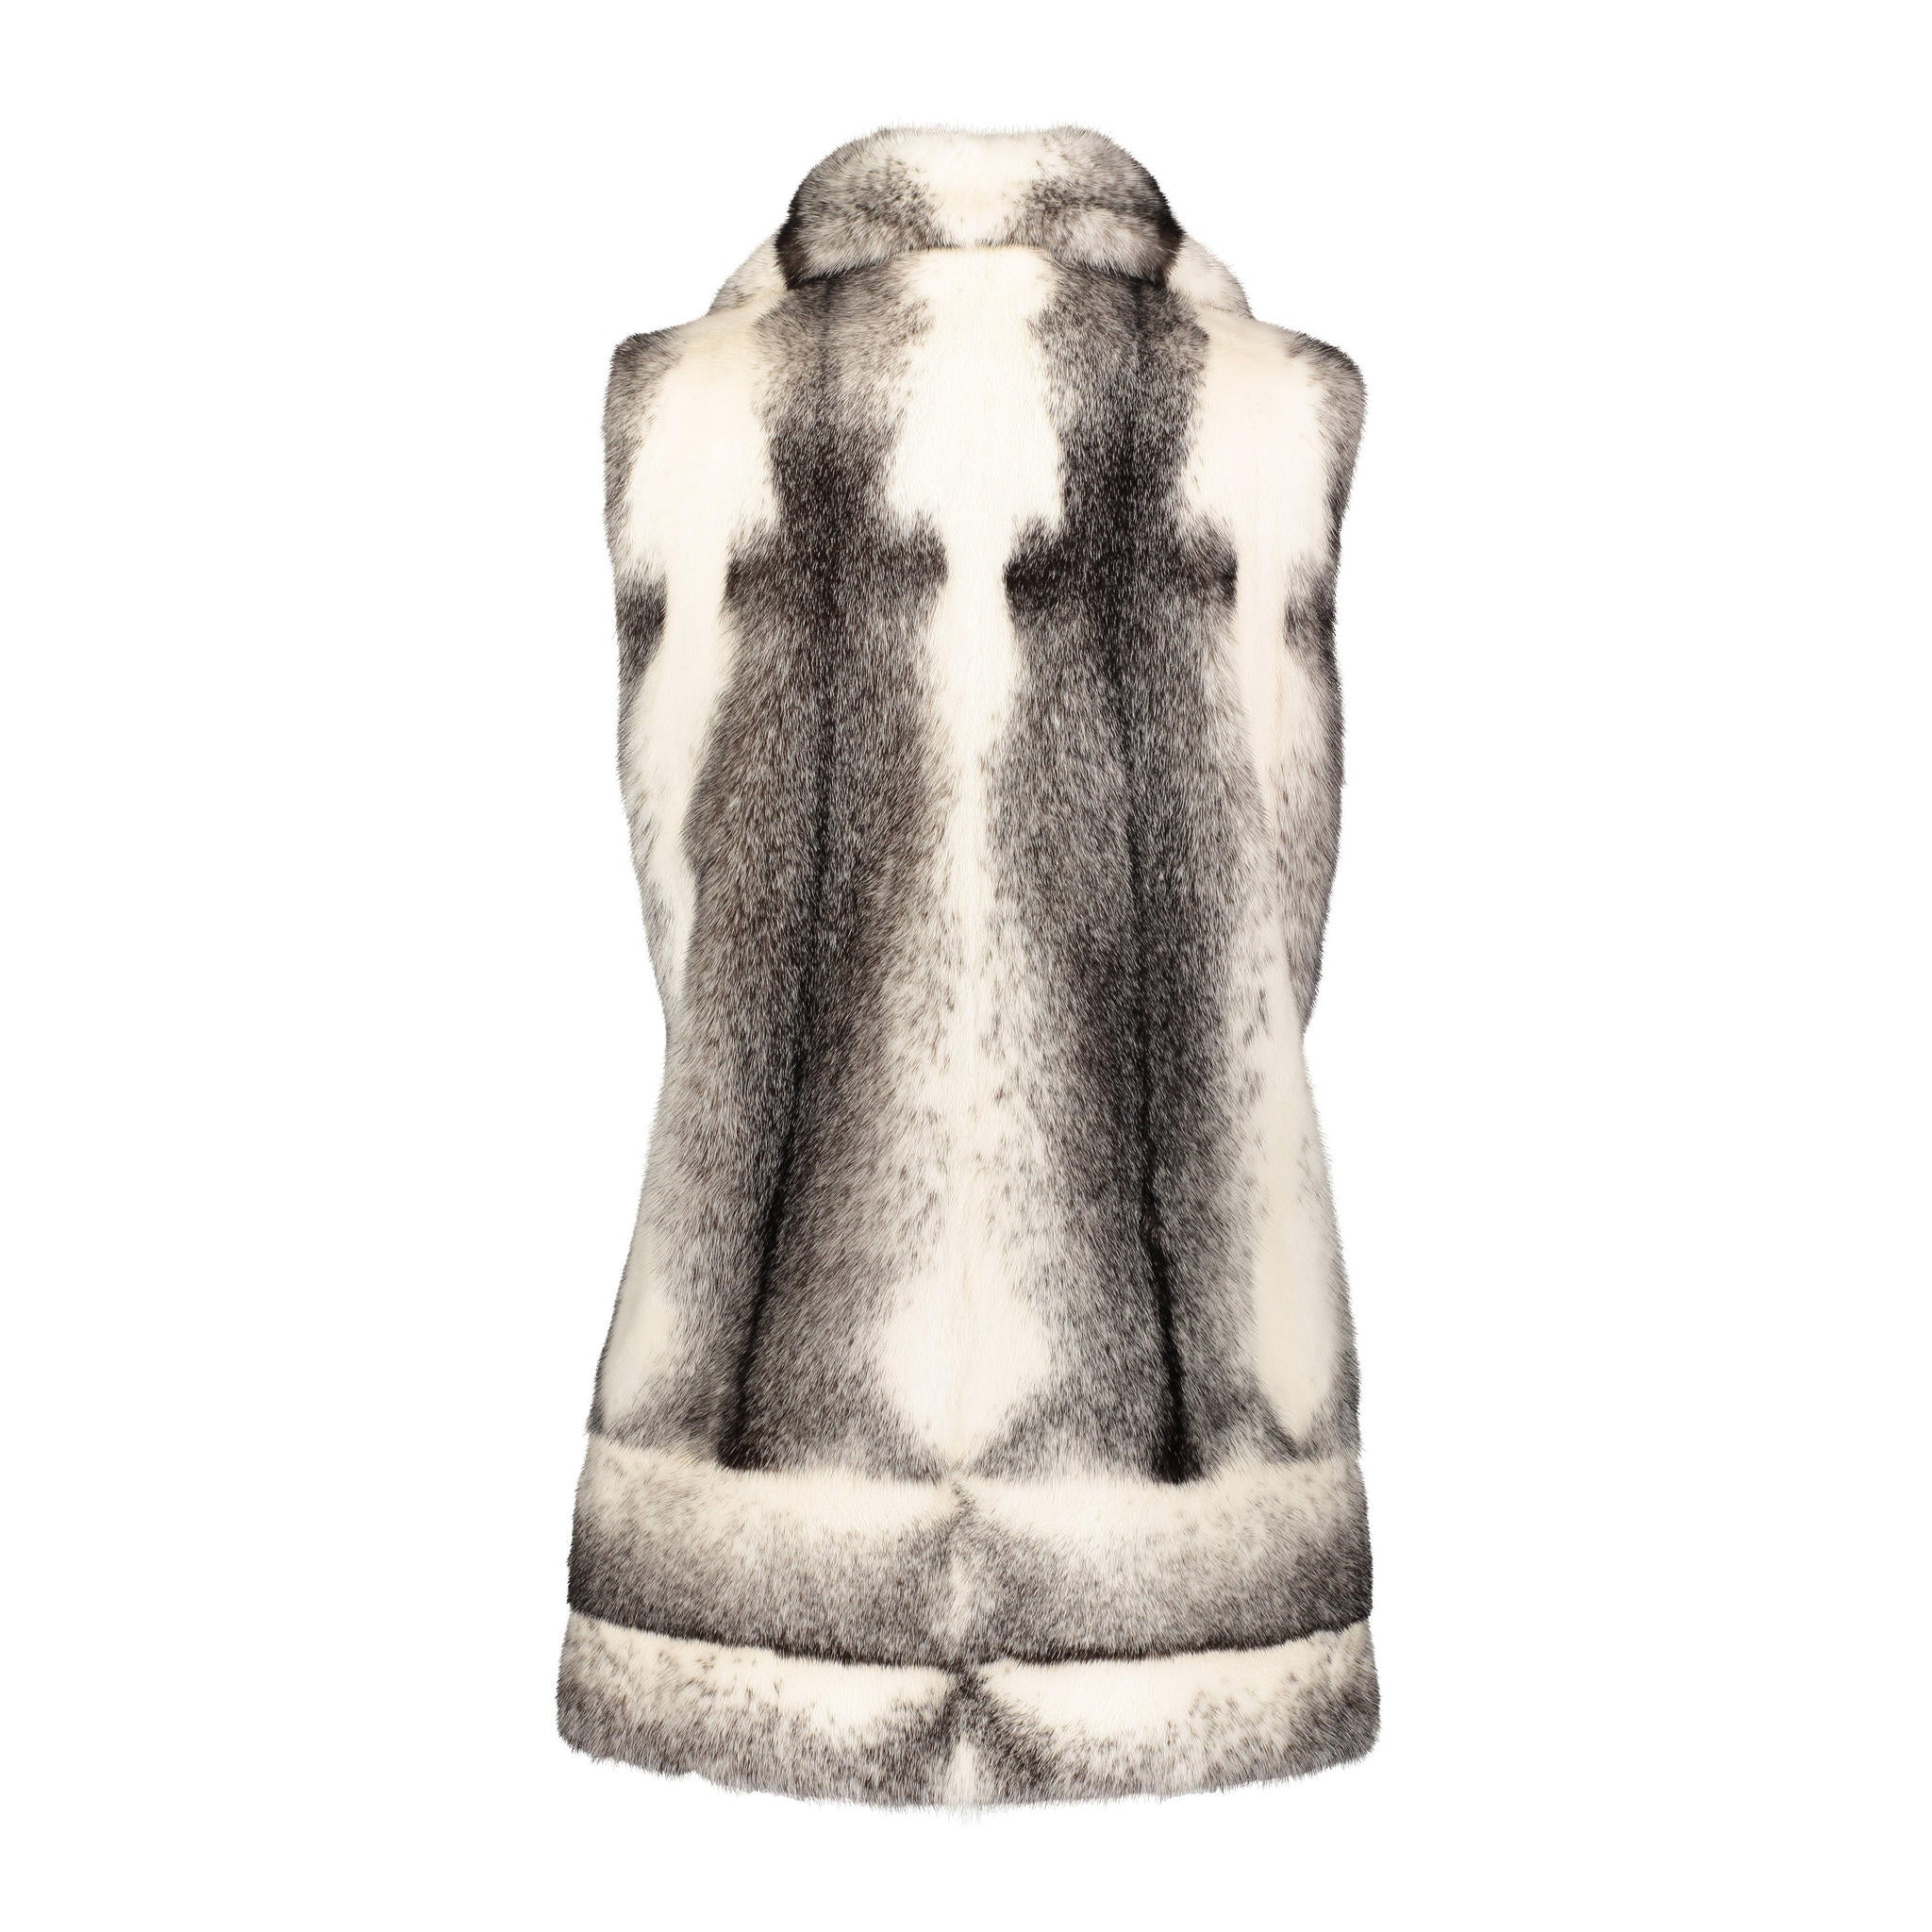 Monica Cross Black Mink vest